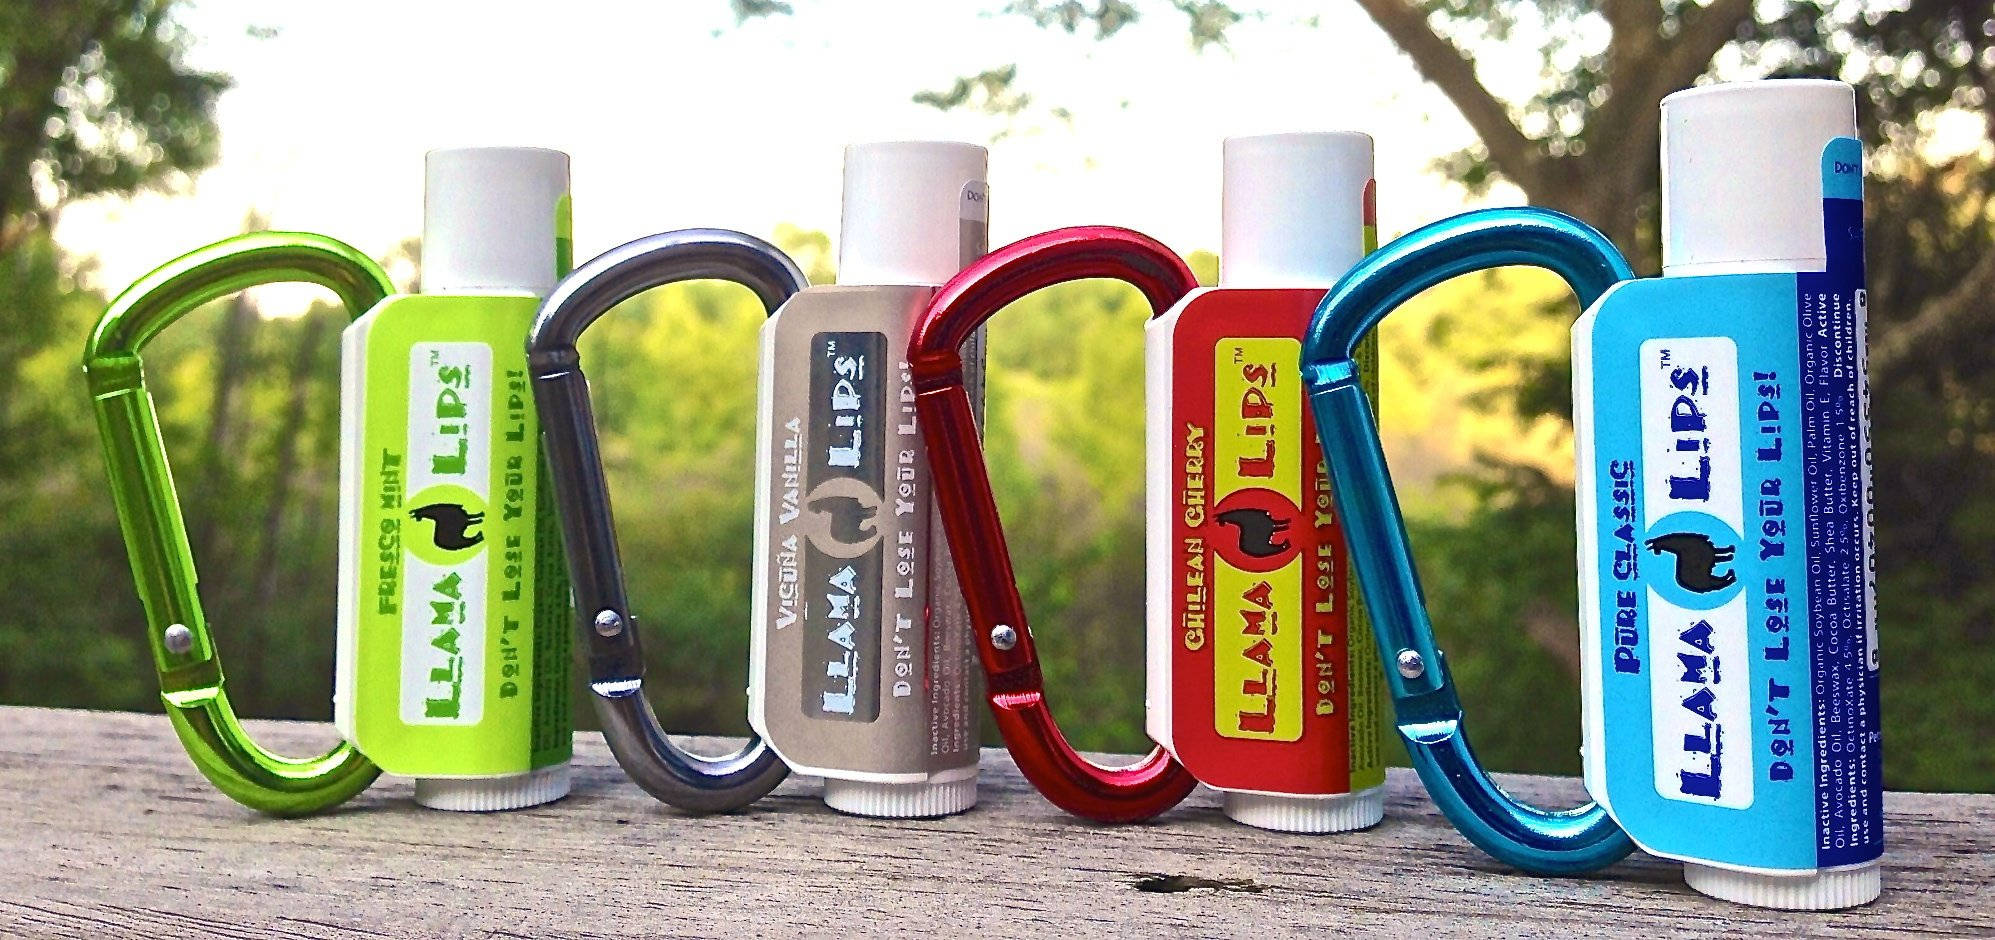 Llama Lips Gift Pack Enjoy the ''Year of the Llama'' Lip Balm Gift Pack with the Patented Lip Balm Clip